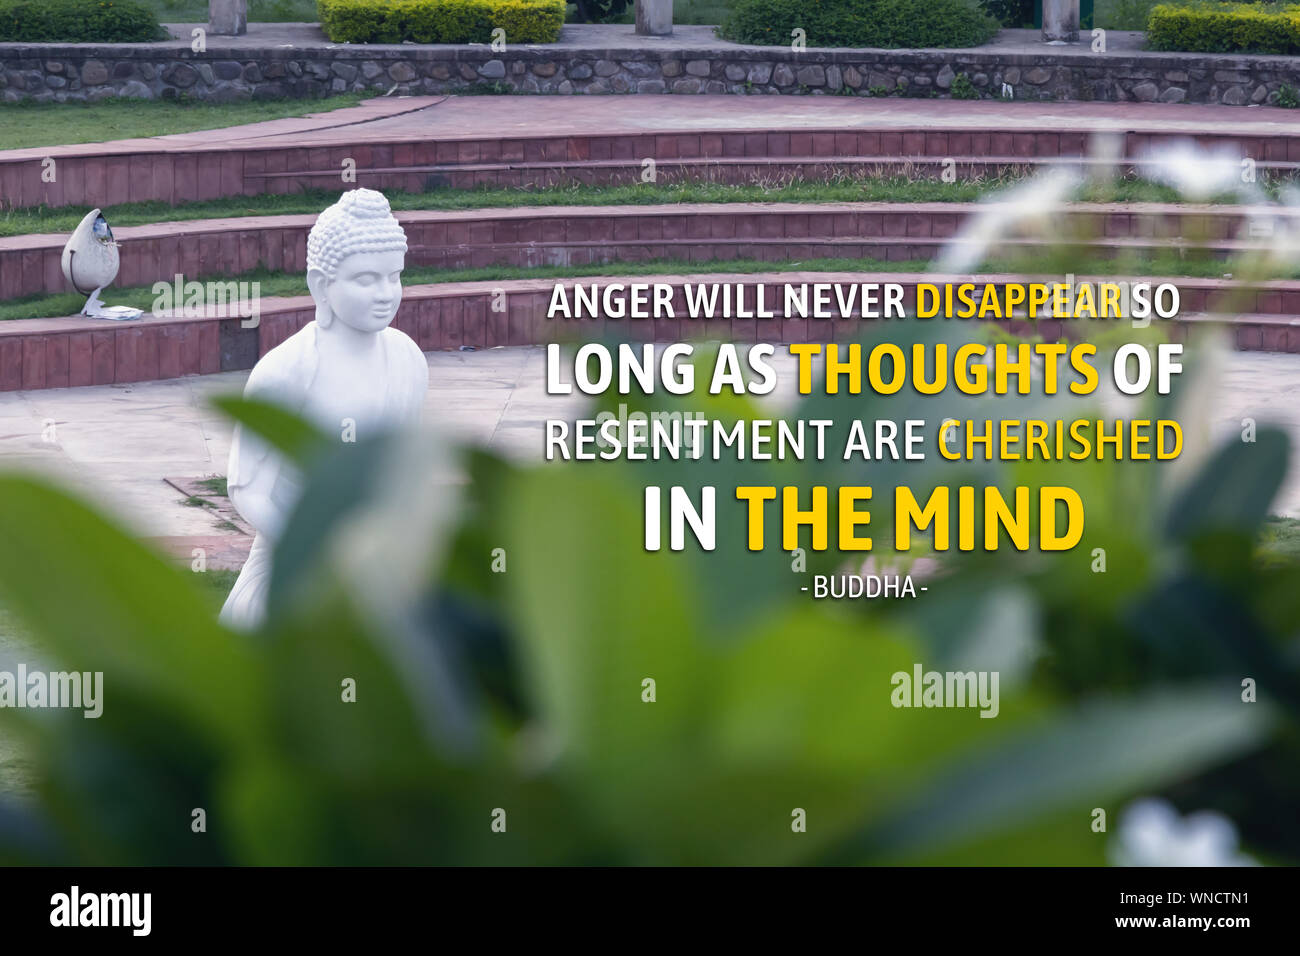 Anger will never disappear so long as thoughts of resentment are cherished in the mind - buddha Stock Photo